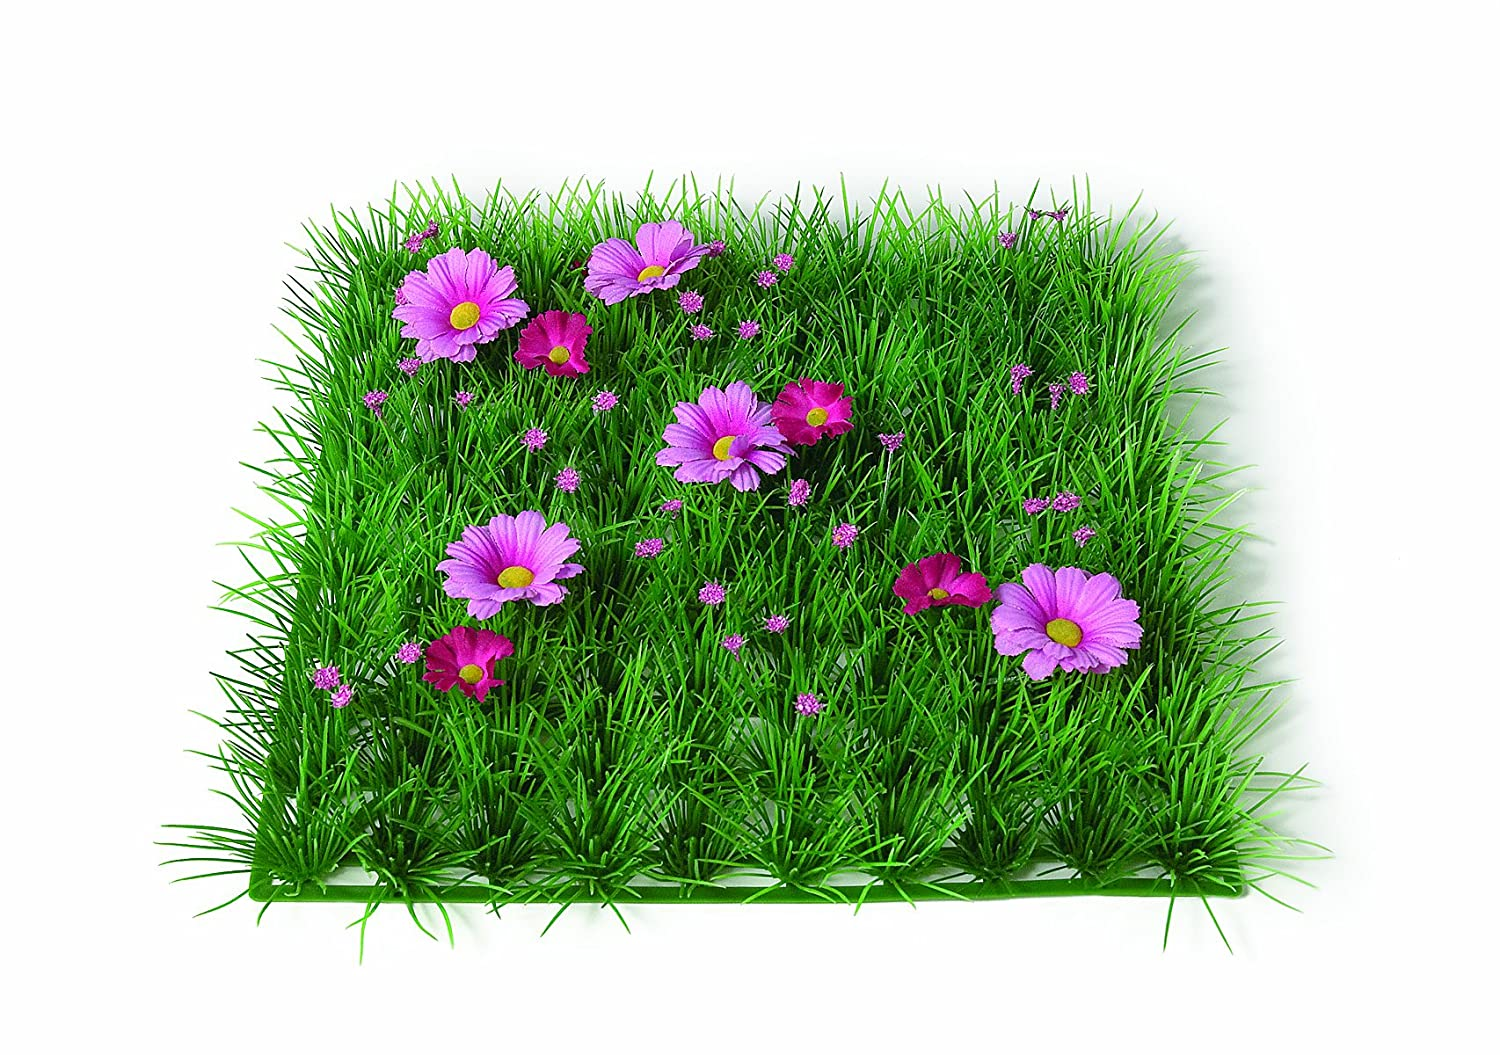 Party table decorations table decor flower placemat for for Decorate with flowers amazon